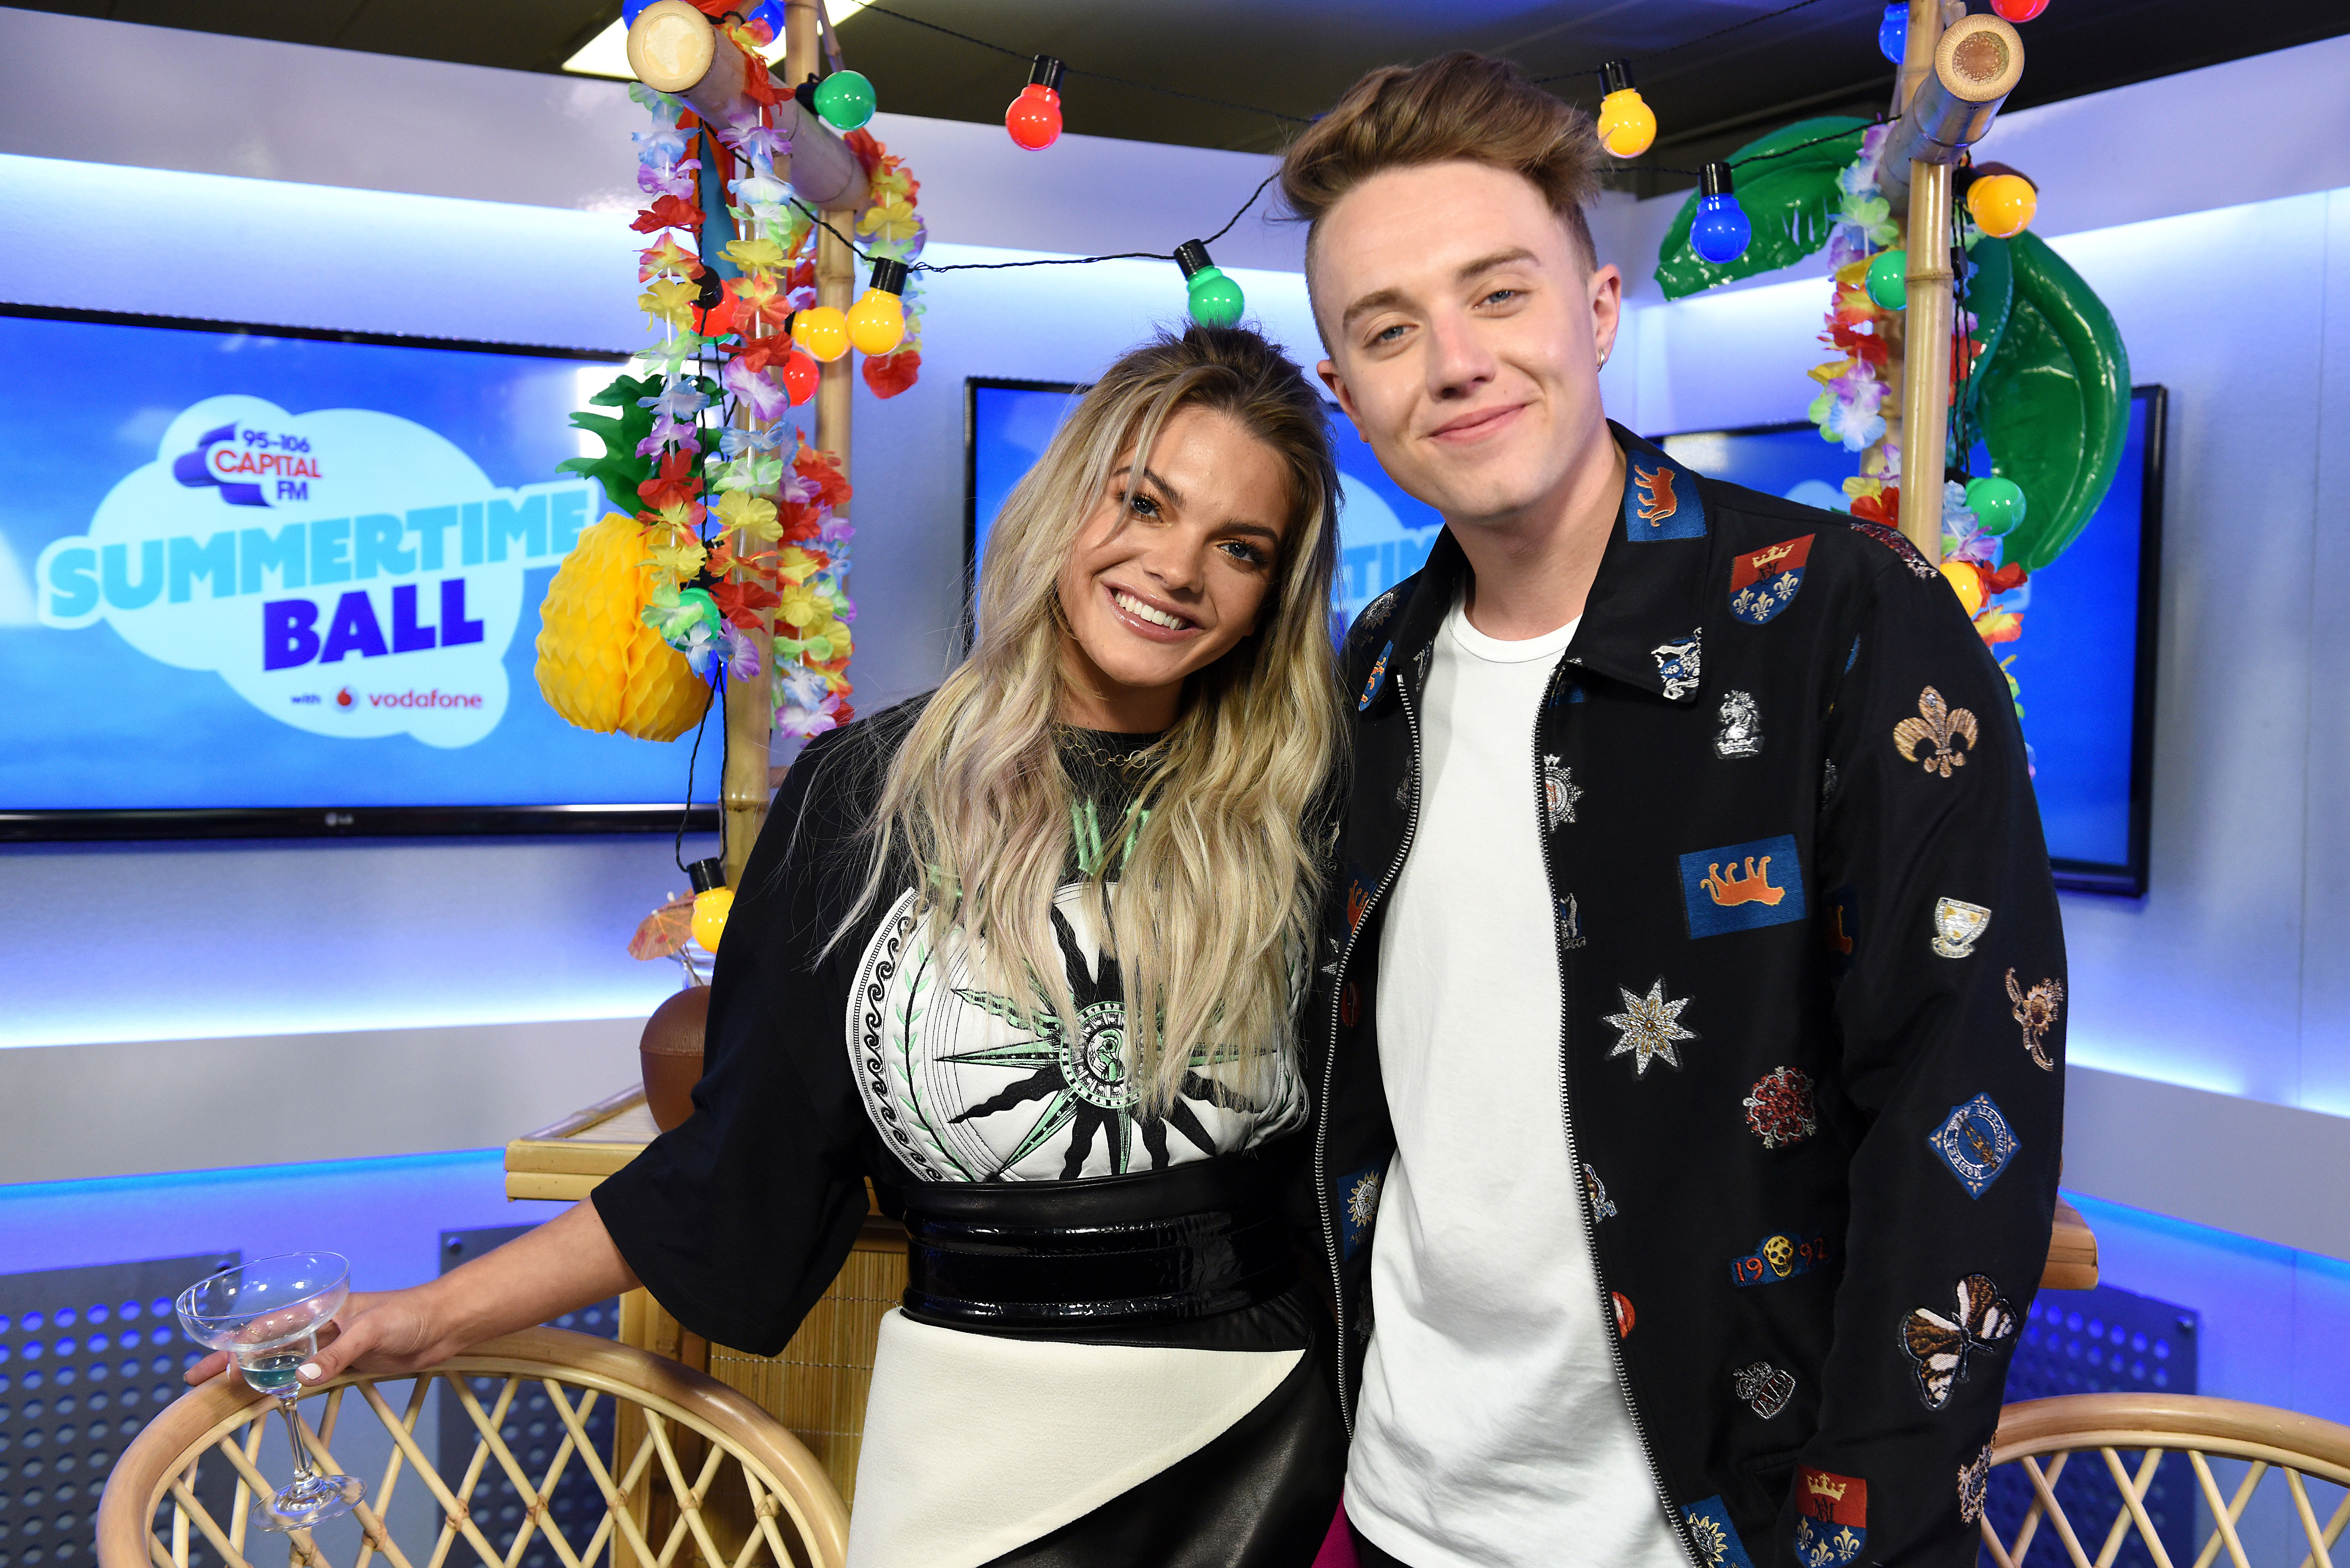 Roman Kemp and Louisa Johnson Summertime Ball 2017